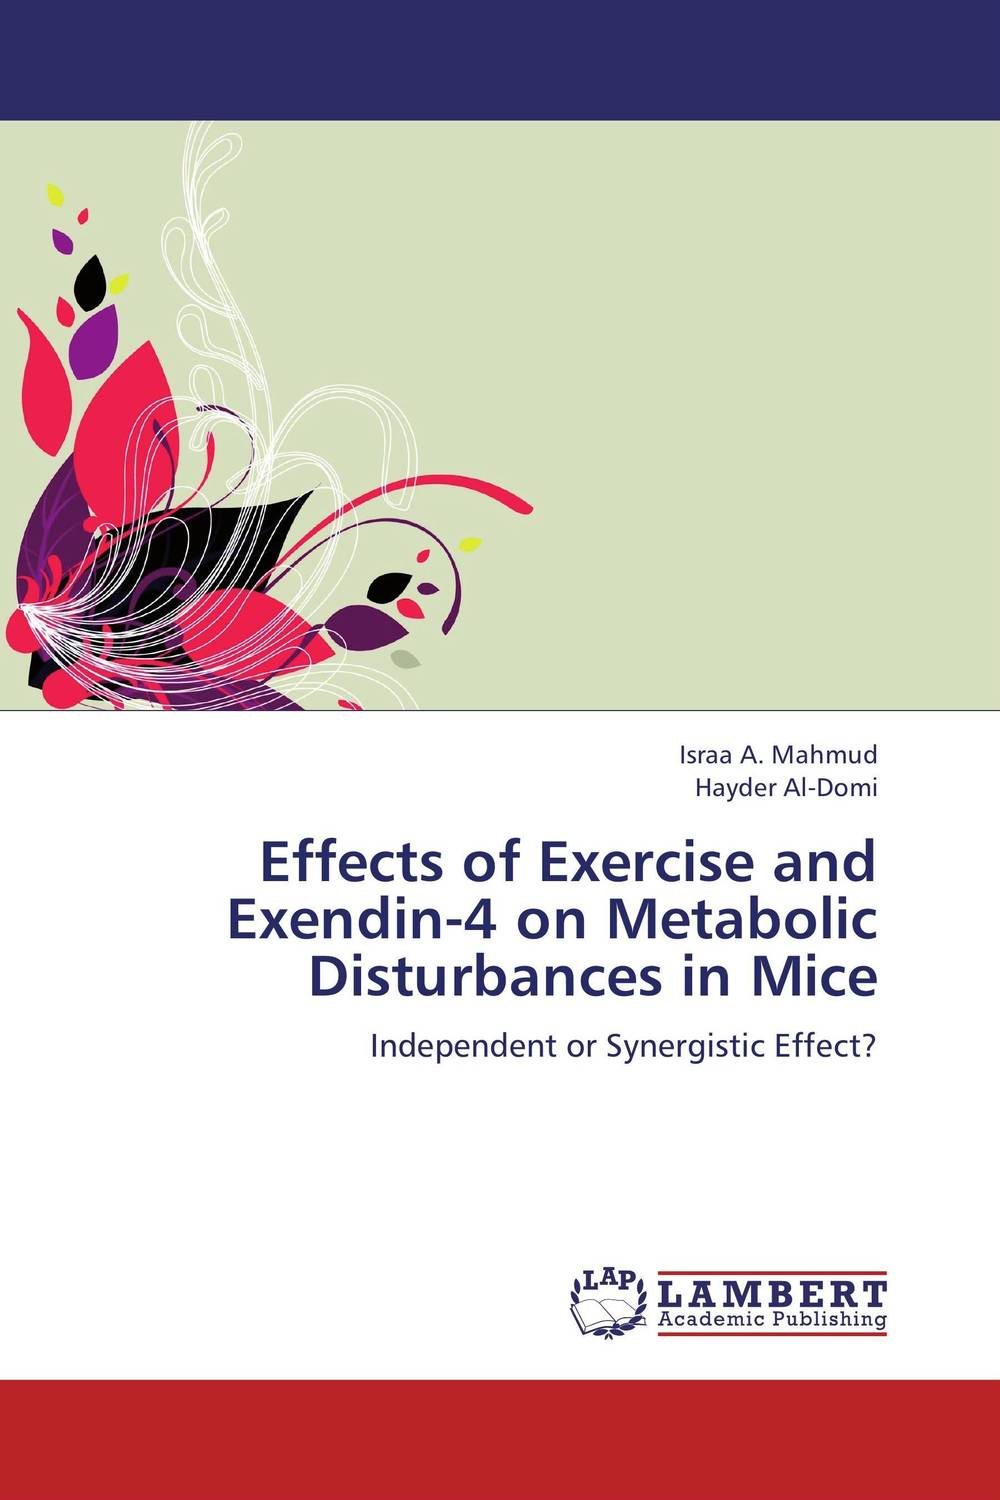 Effects of Exercise and Exendin-4 on Metabolic Disturbances in Mice effects of exercise in different temperatures in type 1 diabetics